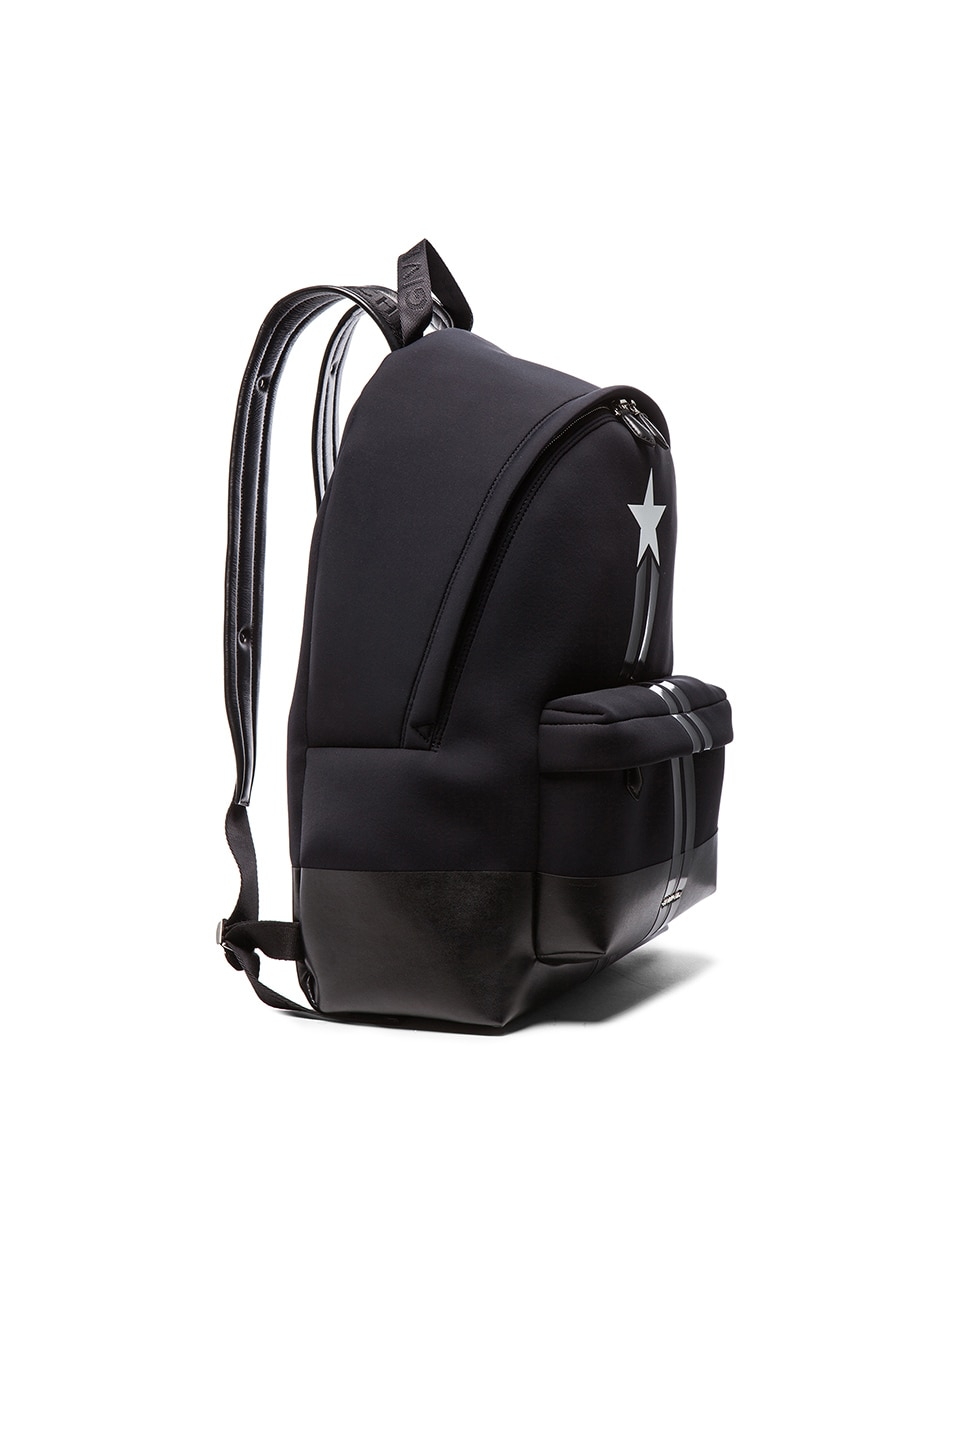 33fd7bfd76 Image 3 of Givenchy Neoprene Backpack with Star and Stripes in Black